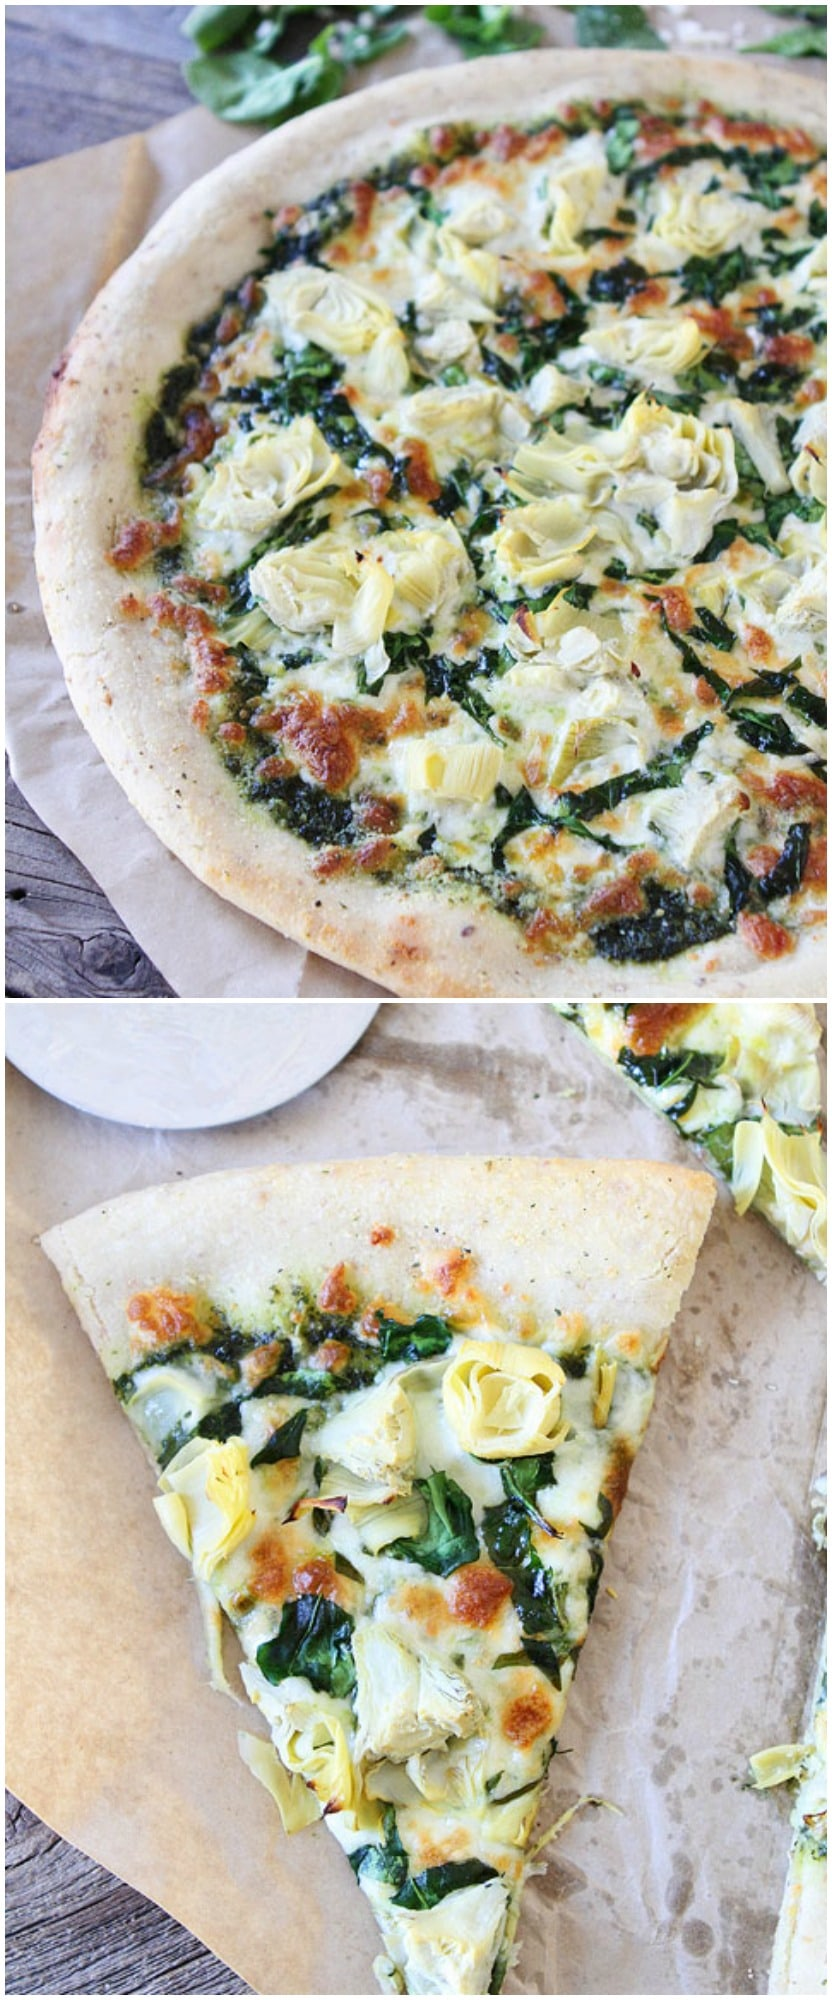 Spinach Artichoke Pesto Pizza on twopeasandtheirpod.com One of my all-time favorite pizzas!